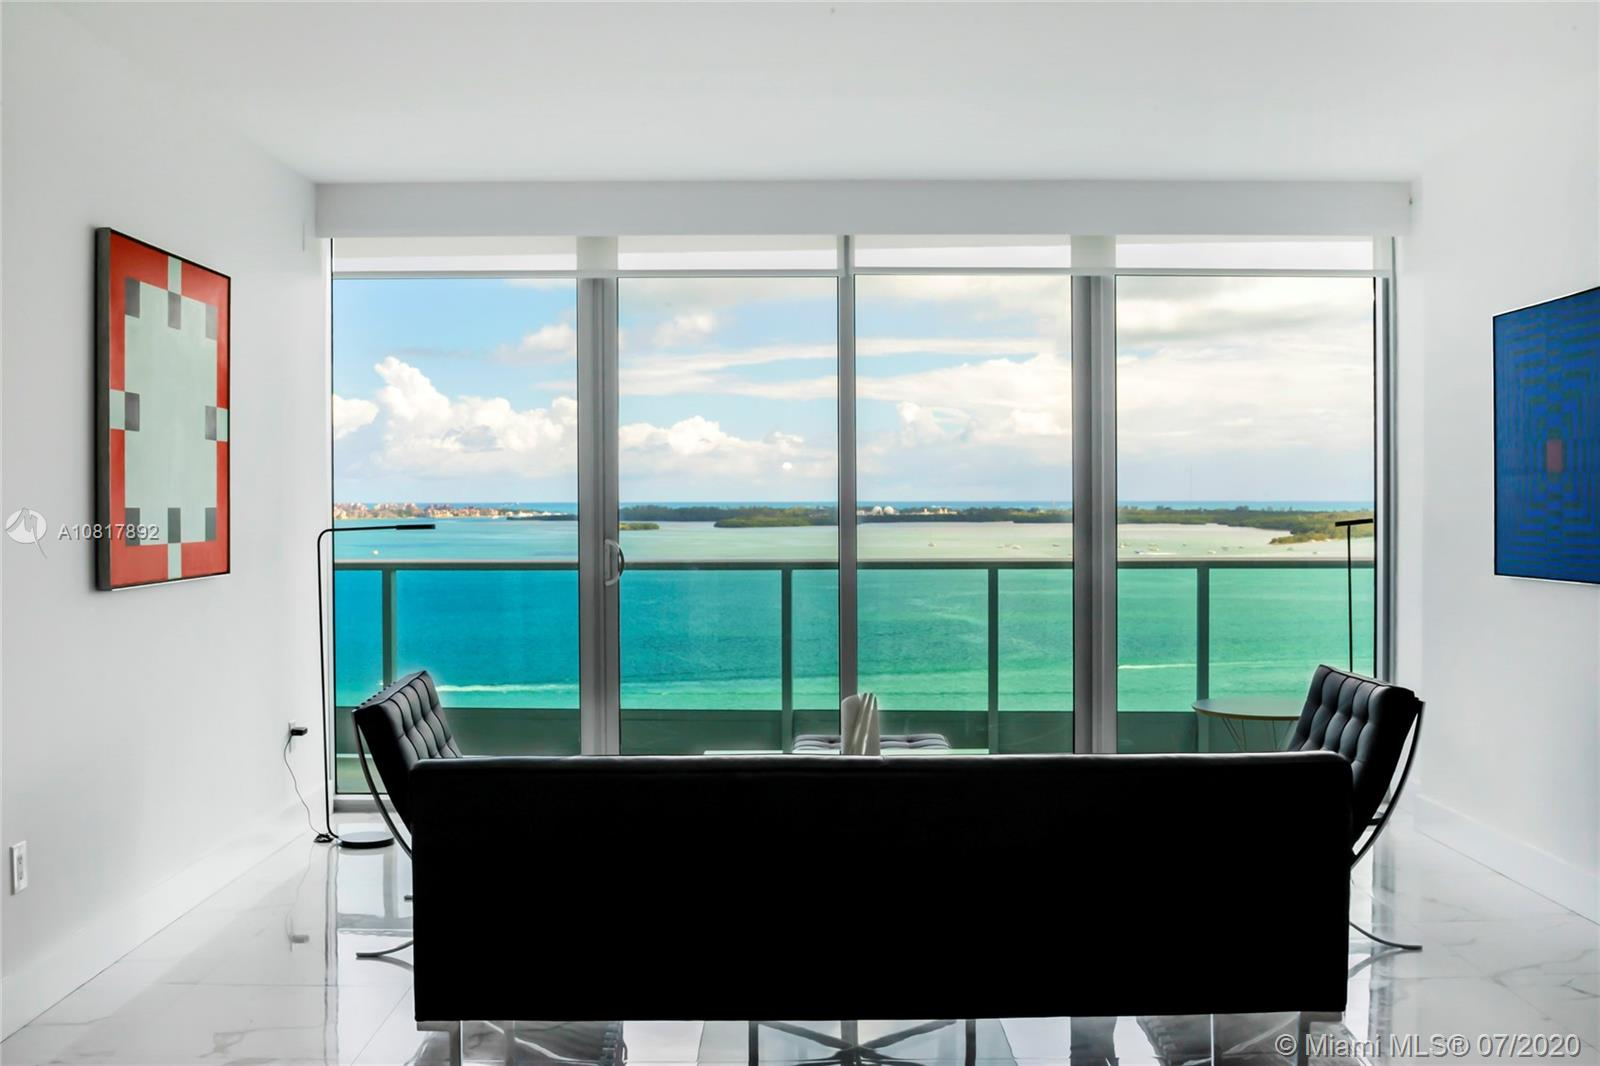 PARADISE AT JADE RESIDENCES. THIS LUXURIOUS 2 BEDROOM + DEN, 3 FULL BATHROOMS. 1 PARKING SPACE AND 1 STORAGE UNIT. DREAM APARTMENT OVER 1,730 SQ.FT COMPLETELY REMODELED. MAGNIFICENT SKYLINE WATERFRONT RESIDENCE GRACED BY FLOOR TO CEILING HEIGHT IMPACT WINDOWS WITH WATER VIEW FROM EVERY ROOM, ACCOMPANIED BY AN ELEGANT FORMAL DINING AND LIVING ROOM, TREMENDOUS CHEF'S KITCHEN. THE DIVINE MASTER SUITE WITH OVER LOOKING TO THE WATER  AN A SOAKING TUB AND SEPARATE GLASS SHOWER. PRIVATE ELEVATOR TO YOUR FOYER ENTRY. ENJOY THE LUXURY AMENITIES LIKE INFINITY WATER FRONT POOL & CABANAS, SPA, JACUZZI, GYM, ROOFTOP PARTY ROOM & OTHER EXCLUSIVE SERVICES. GO TO VIRTUAL TOUR TO SEE THE UNIT VIDEO!!!